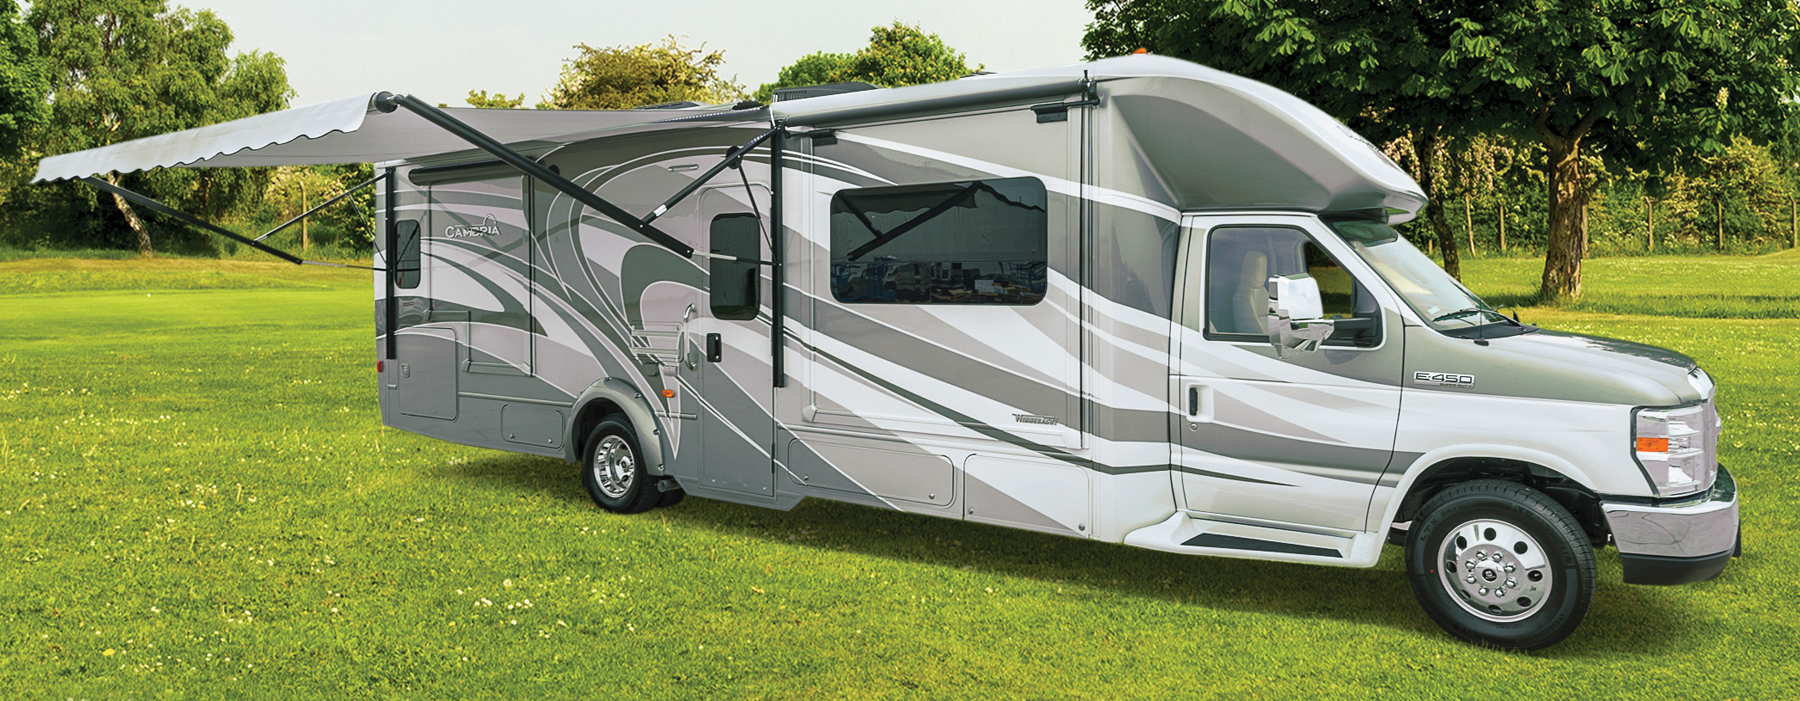 Winnebago cambria class c motorhome unwind inside out for Used motor homes class c